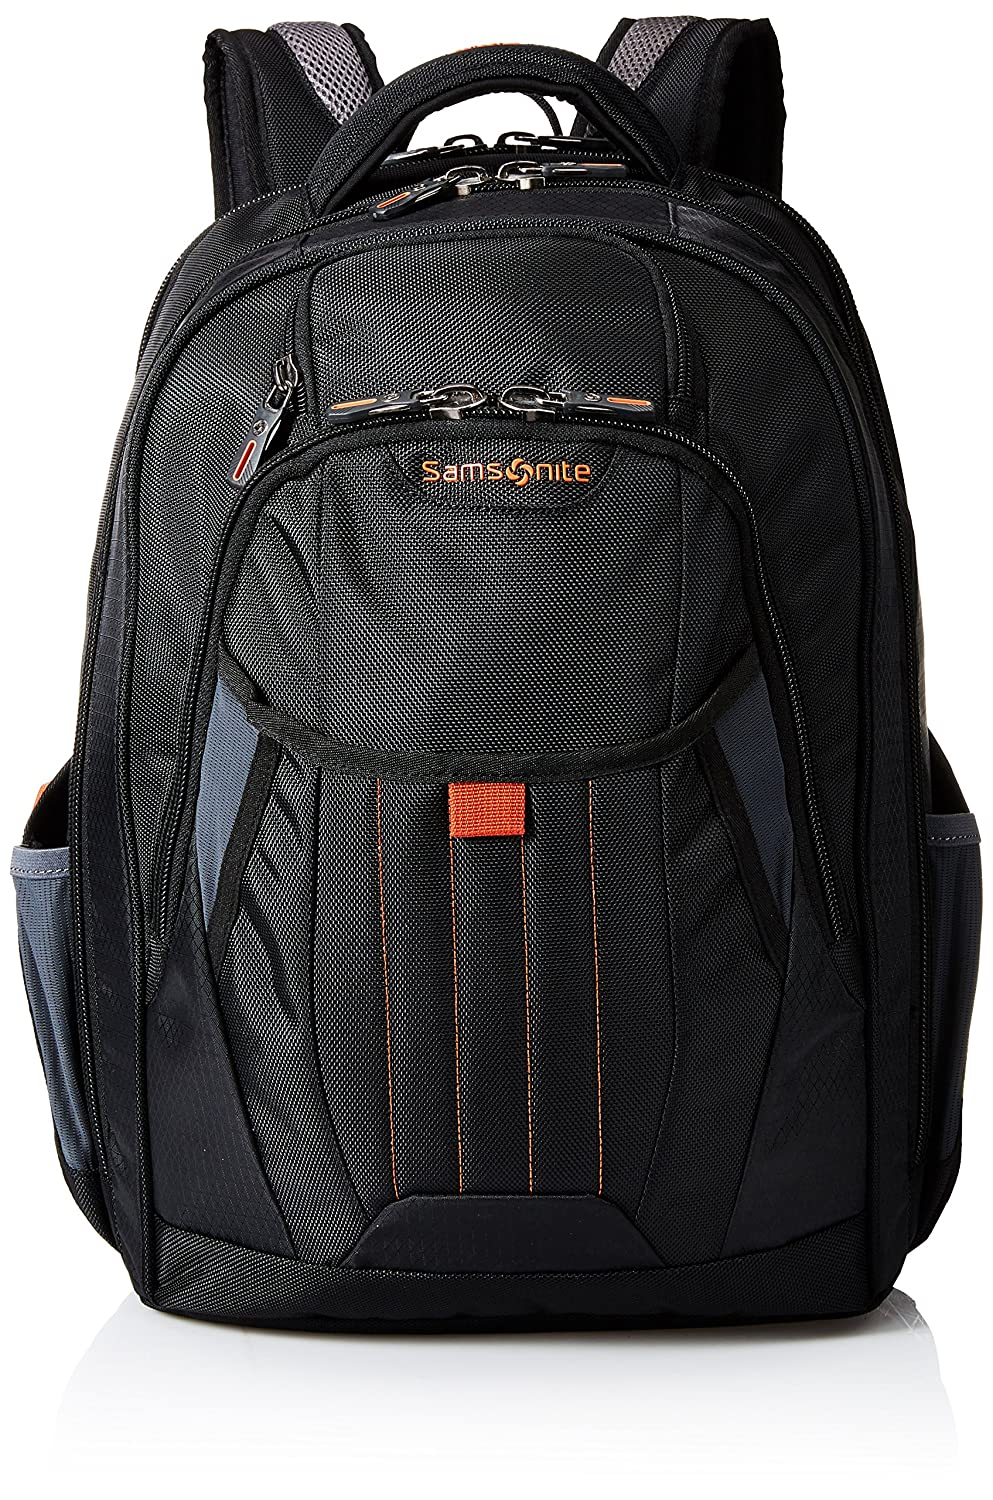 $54.58 ($90.99) Samsonite Tectonic 2 Laptop Large Backpack, Black/Orange, International Carry-On